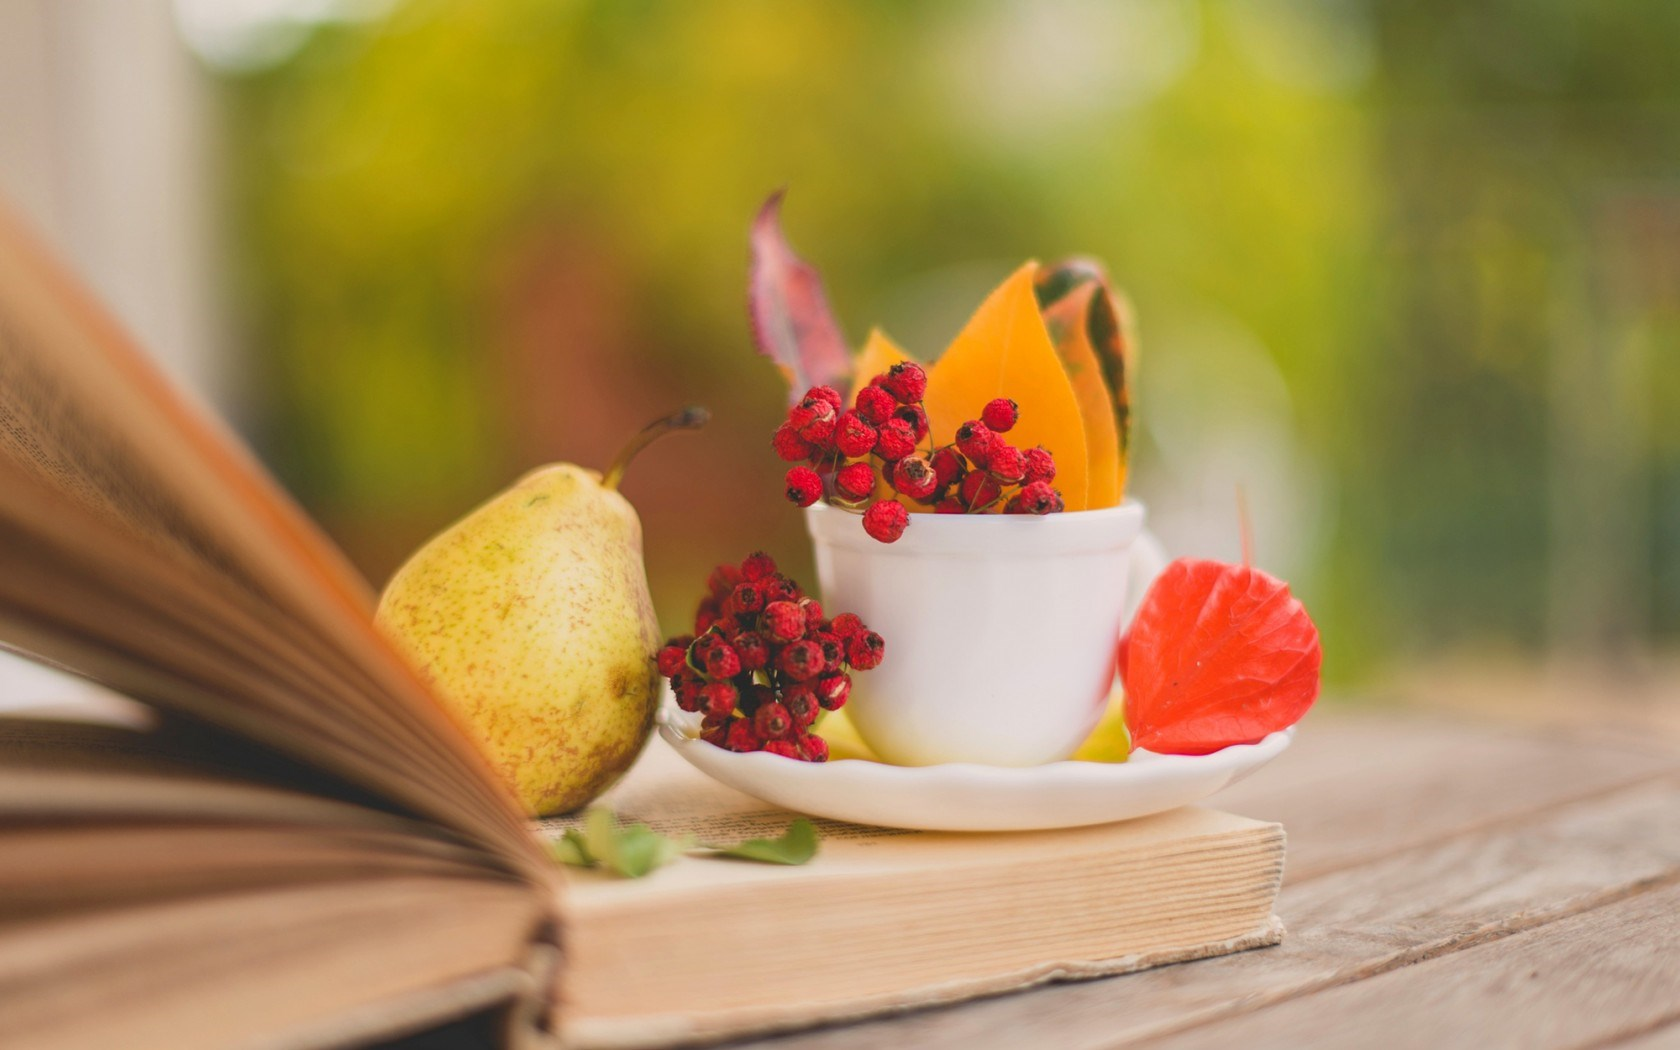 Book Pear Leaves Cup Berries Red Autumn